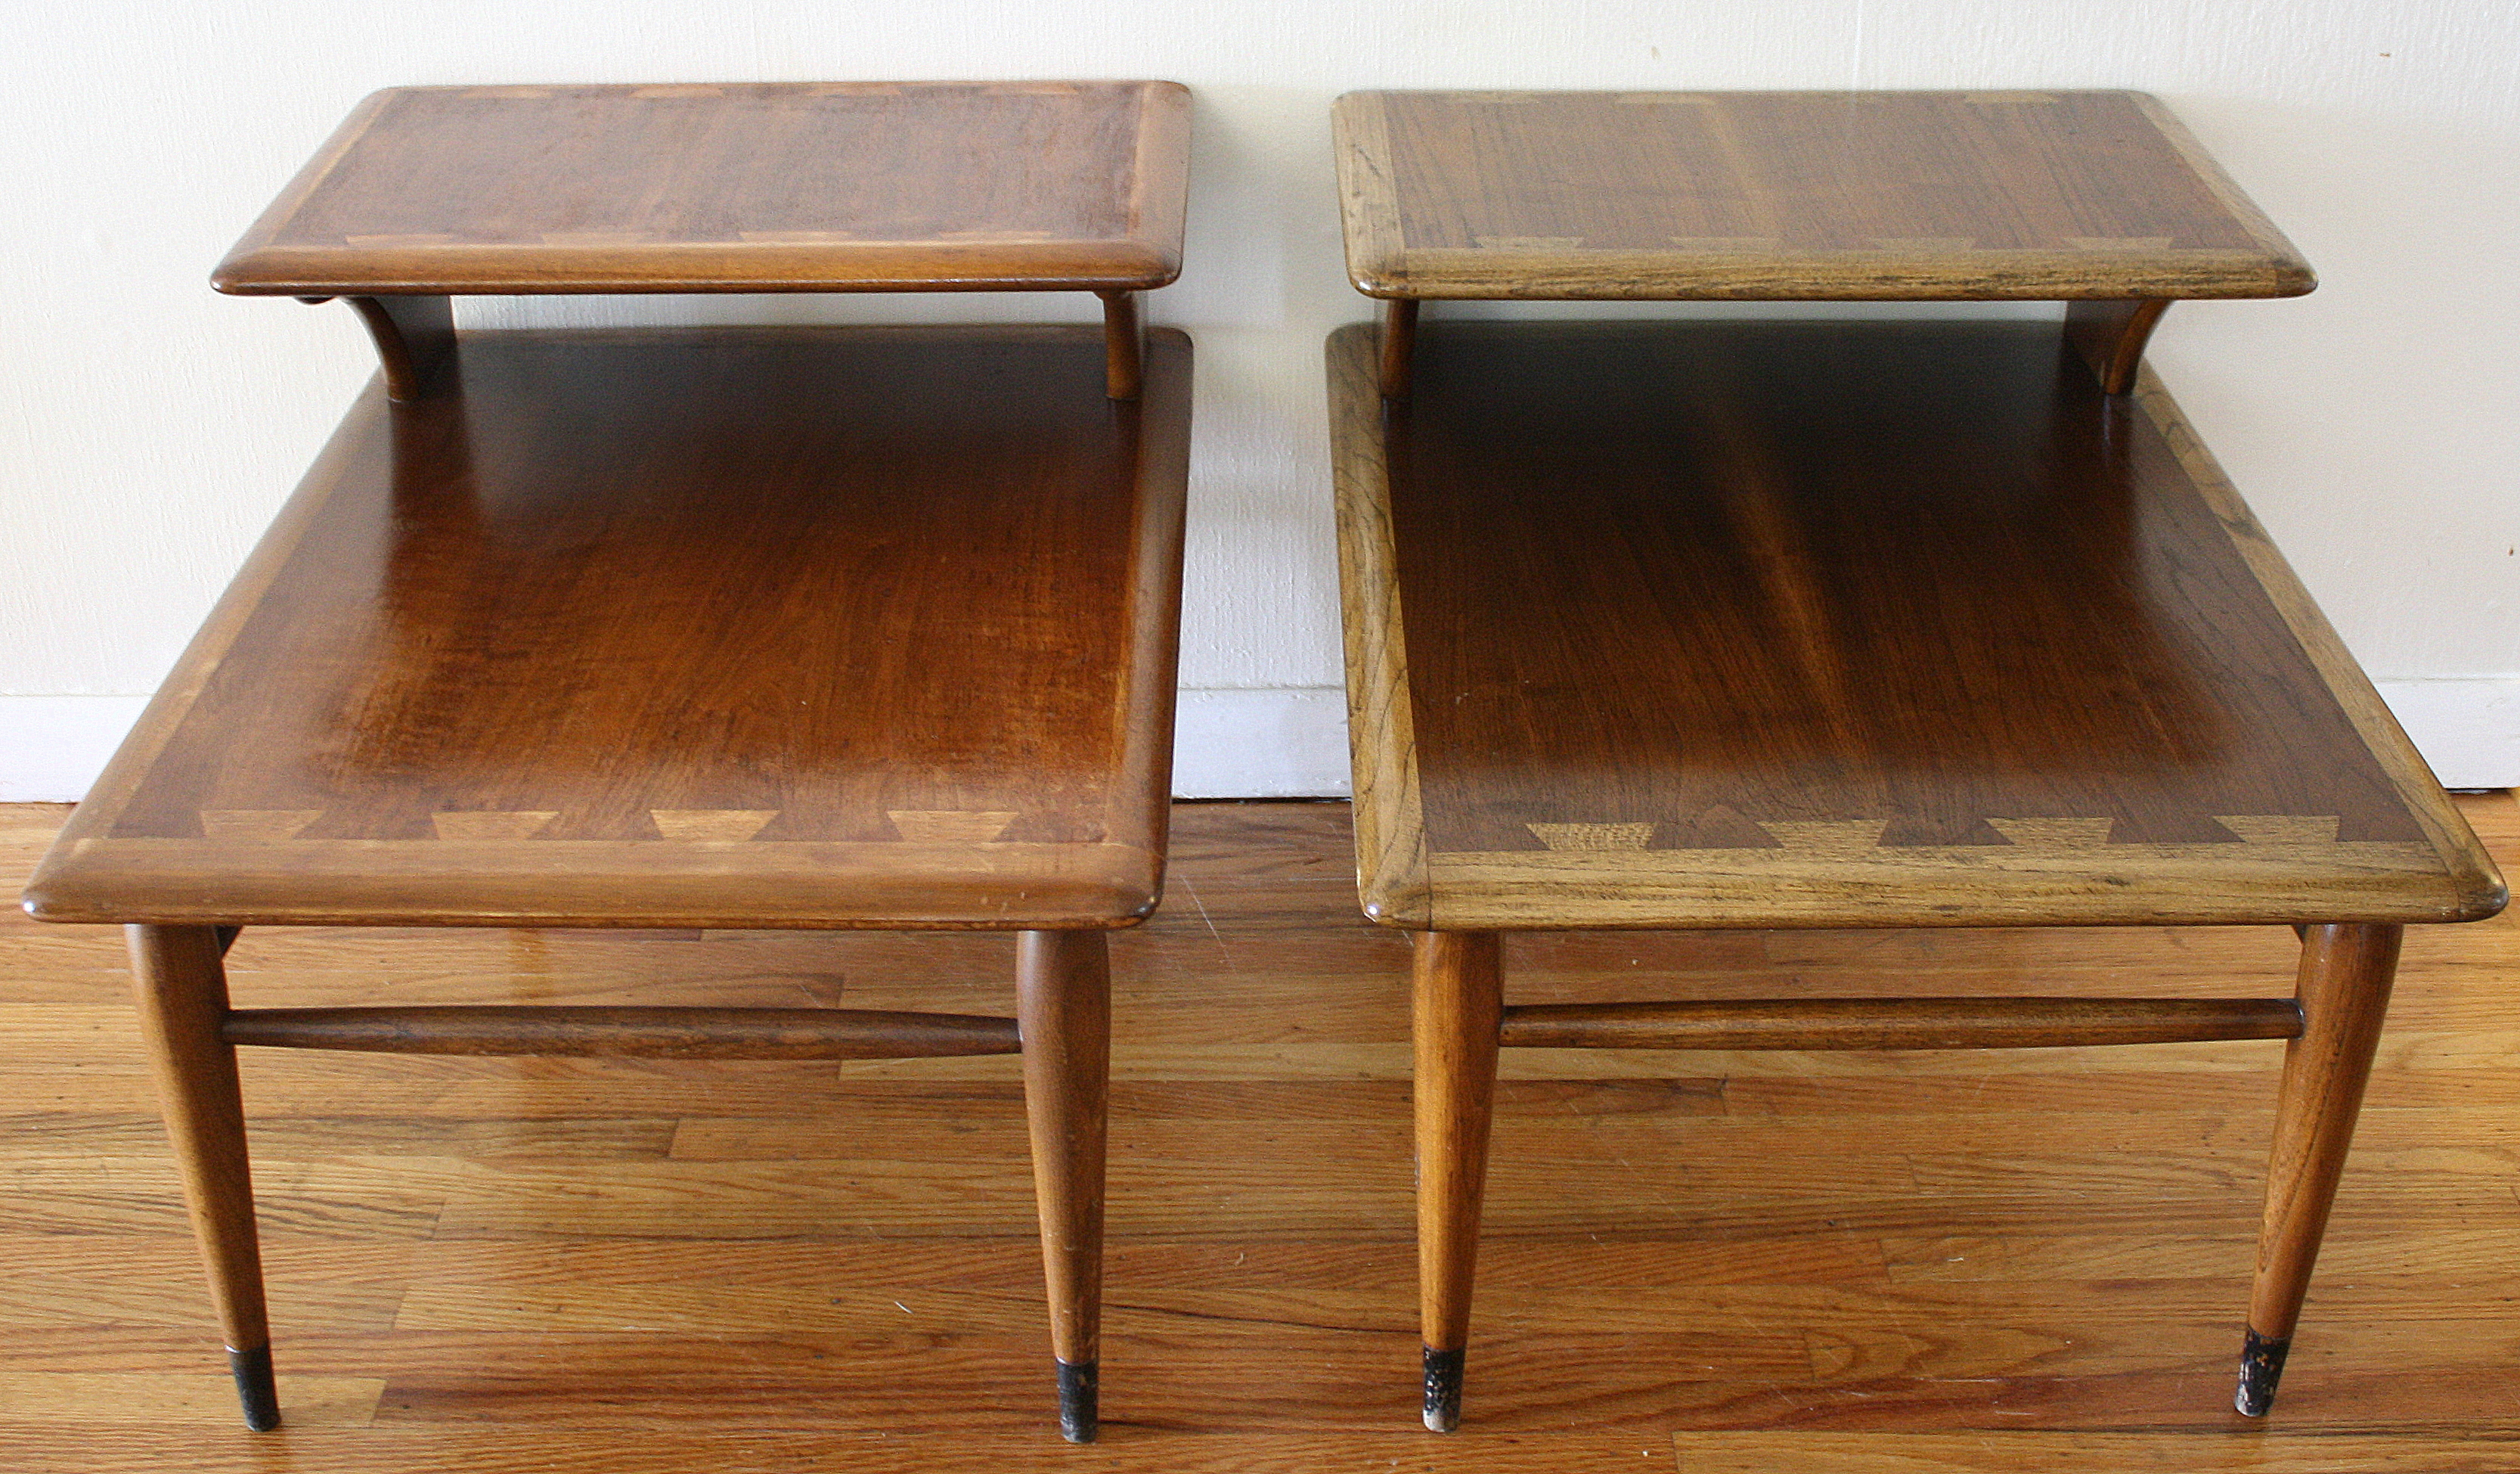 heywood wakefield dining table and chairs little tikes adjustable mid century modern dovetail side end tables – lane acclaim series | picked vintage